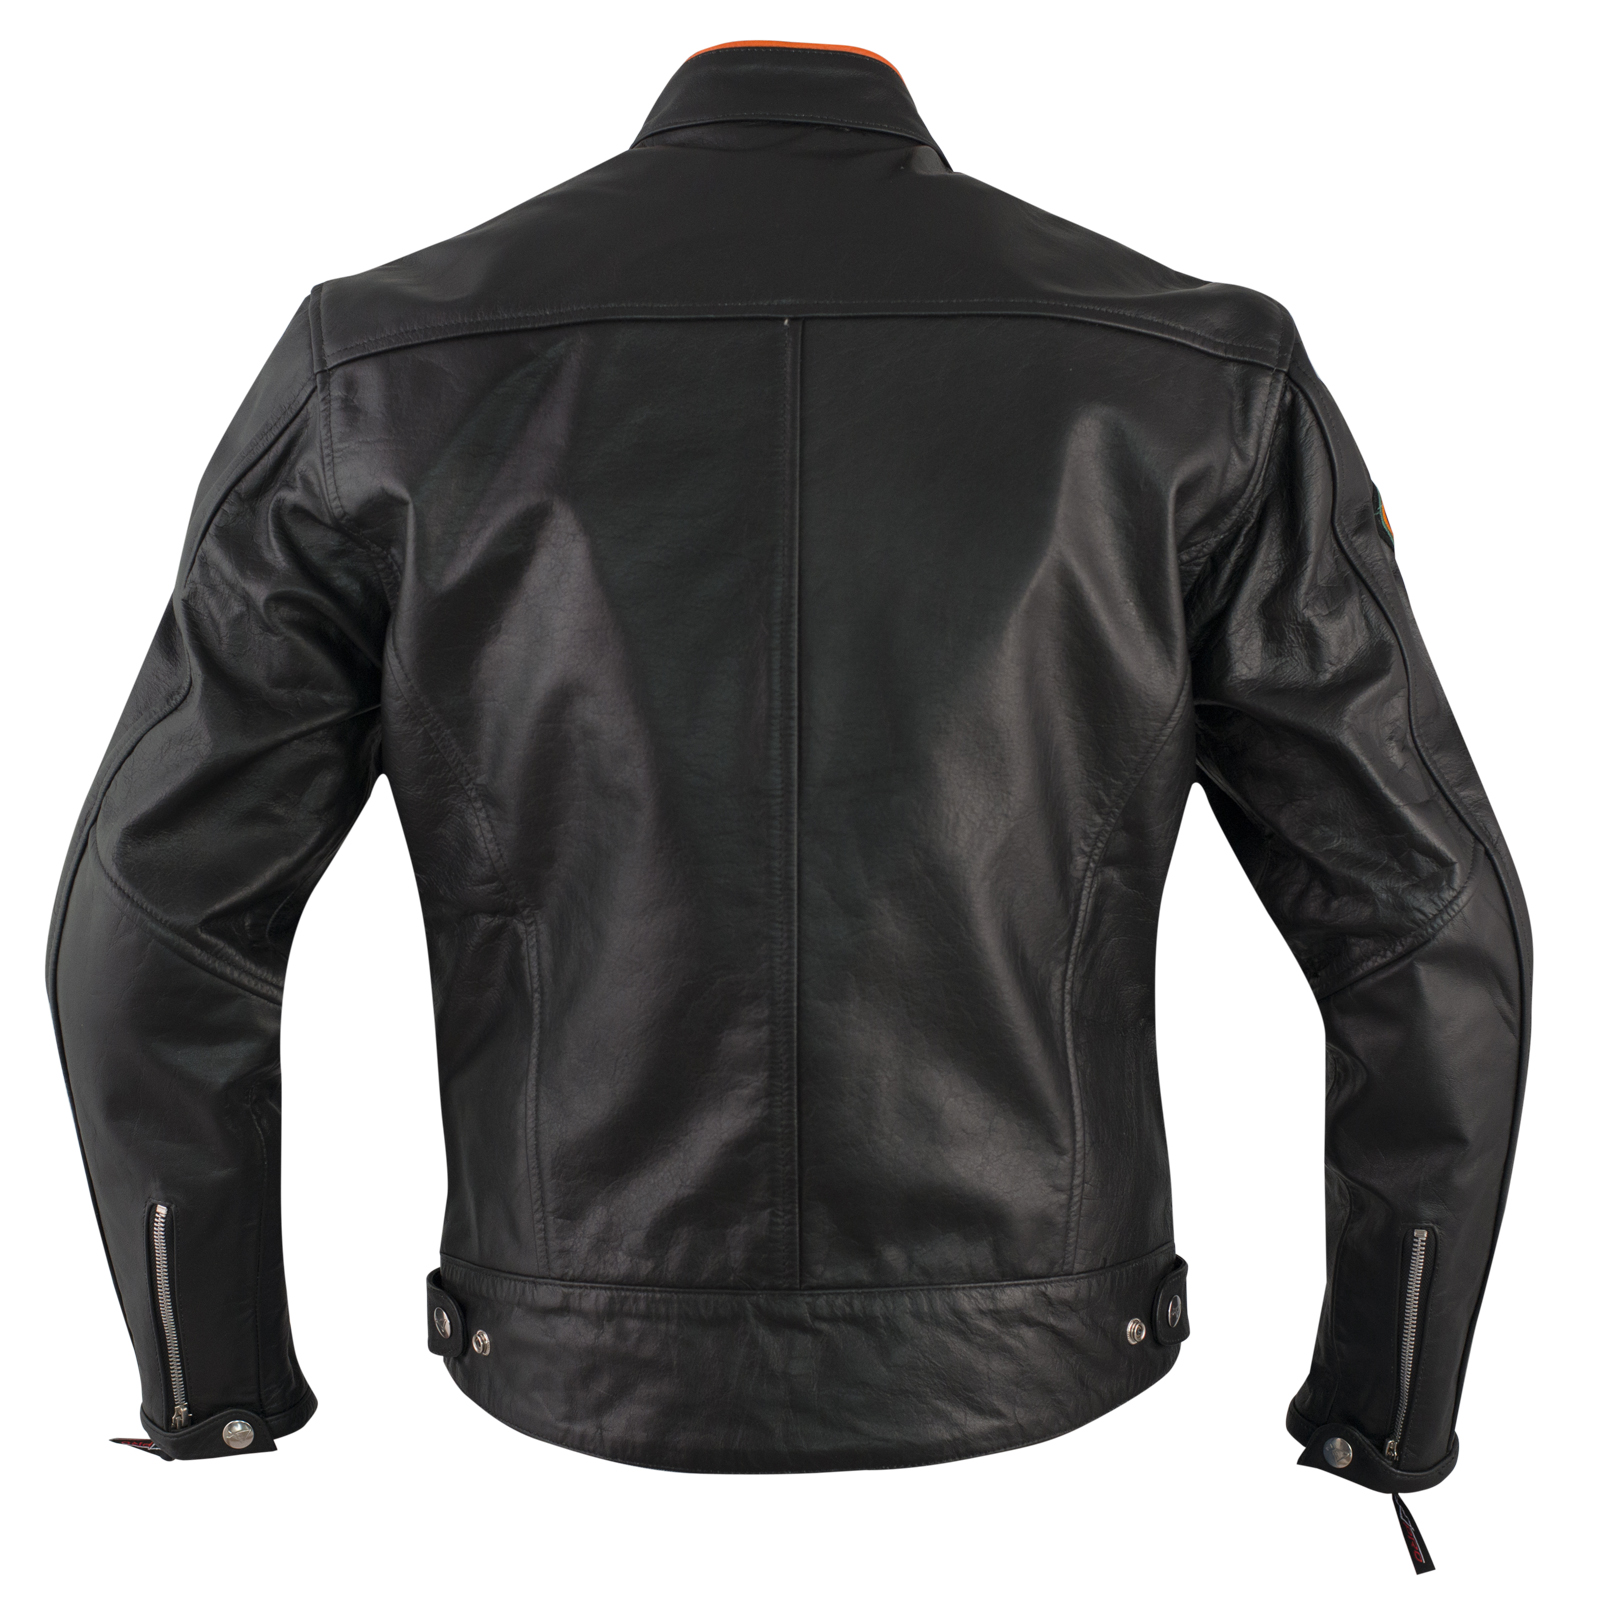 Quality leather motorcycle jackets